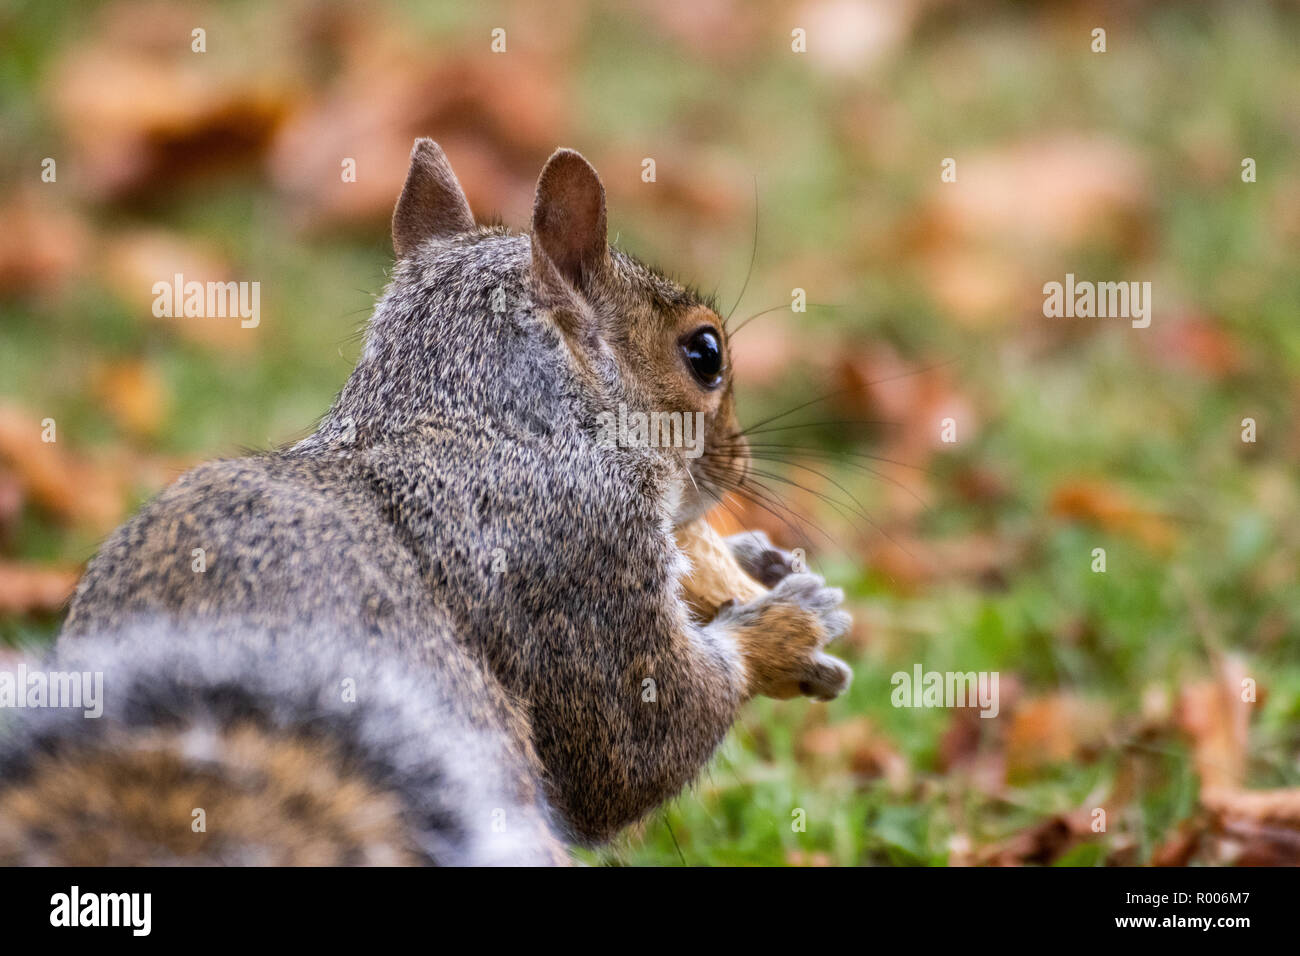 A grey squirrel sitting on brown autumn leaves - Stock Image